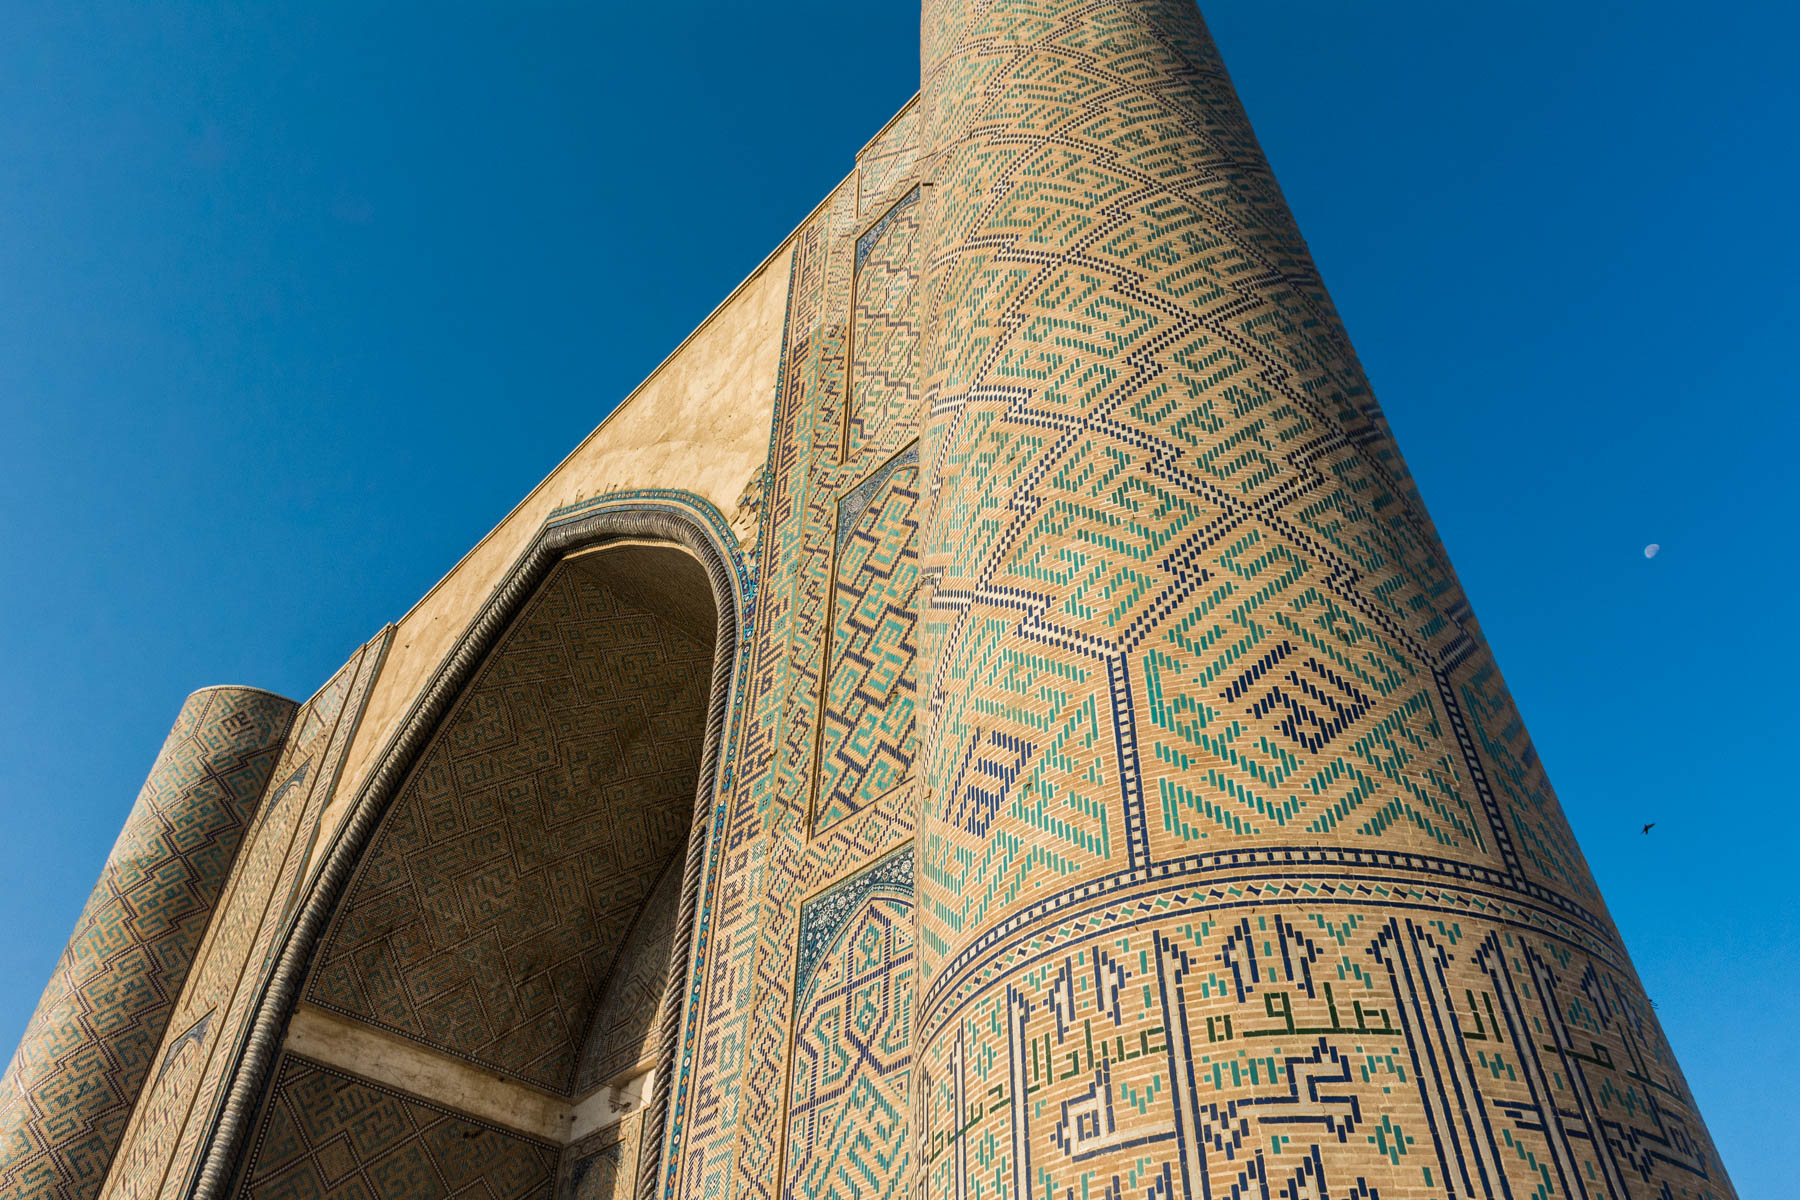 Two week Uzbekistan travel itinerary - The towering Bibi Khanym mosque in Samarkand, Uzbekistan - Lost With Purpose